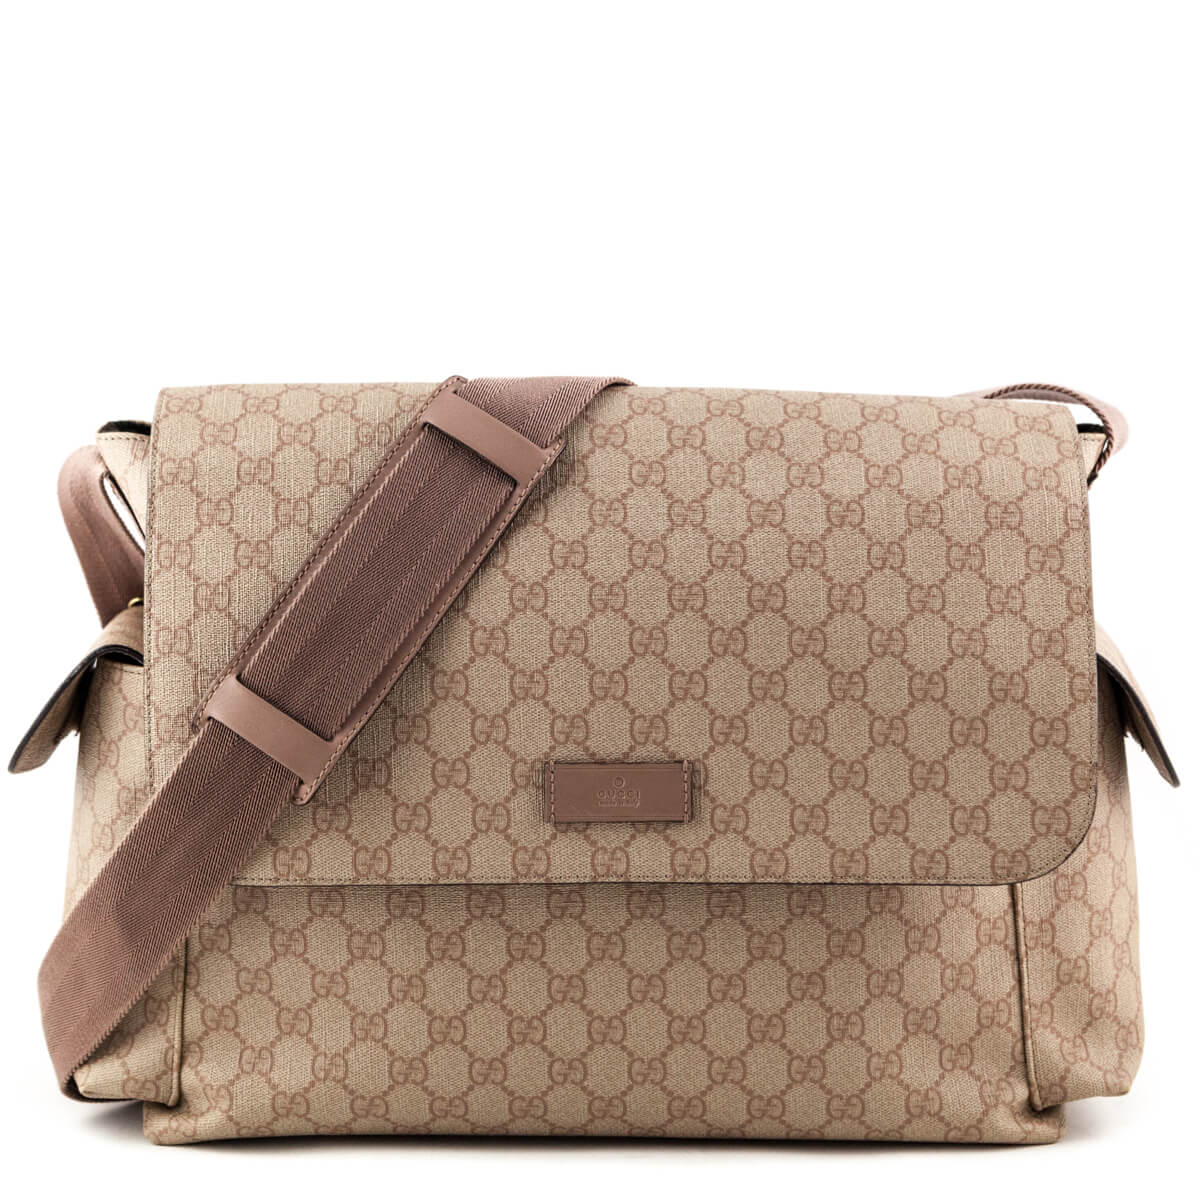 a1e8eb984f4 Gucci GG Monogram Diaper Bag - LOVE that BAG - Preowned Authentic Designer  Handbags ...